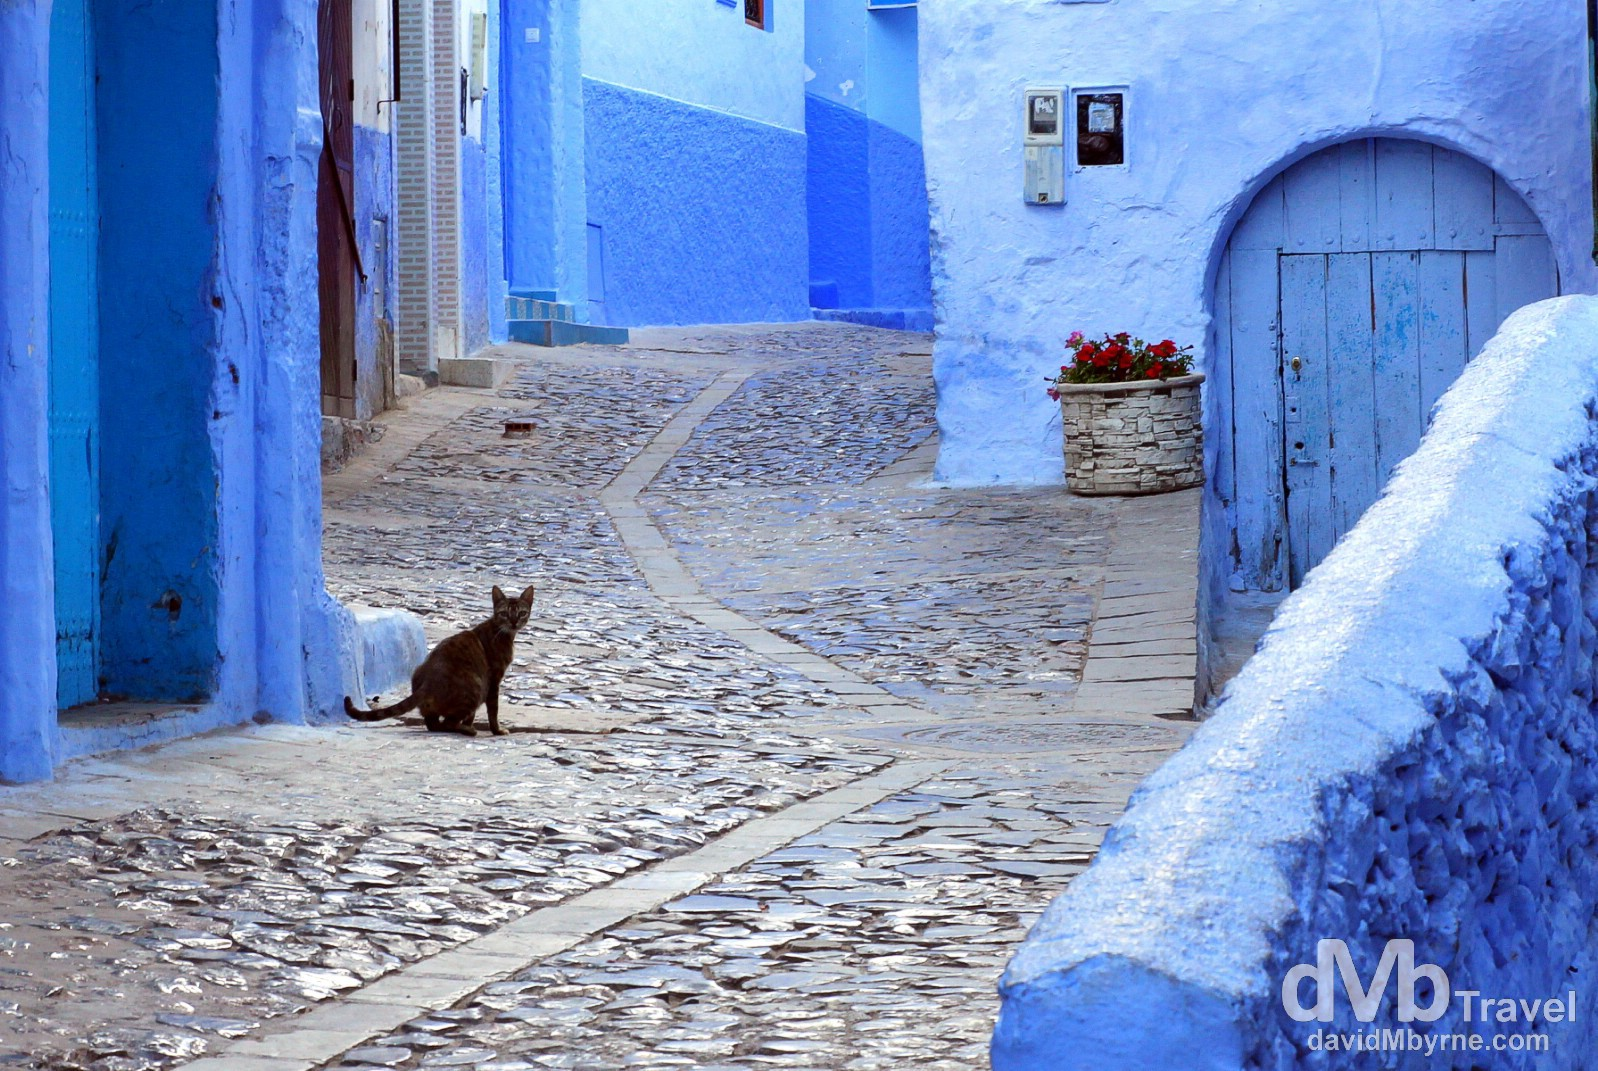 A cat in the early morning lanes of the medina in Chefchaouen, Morocco. June 1st, 2014.